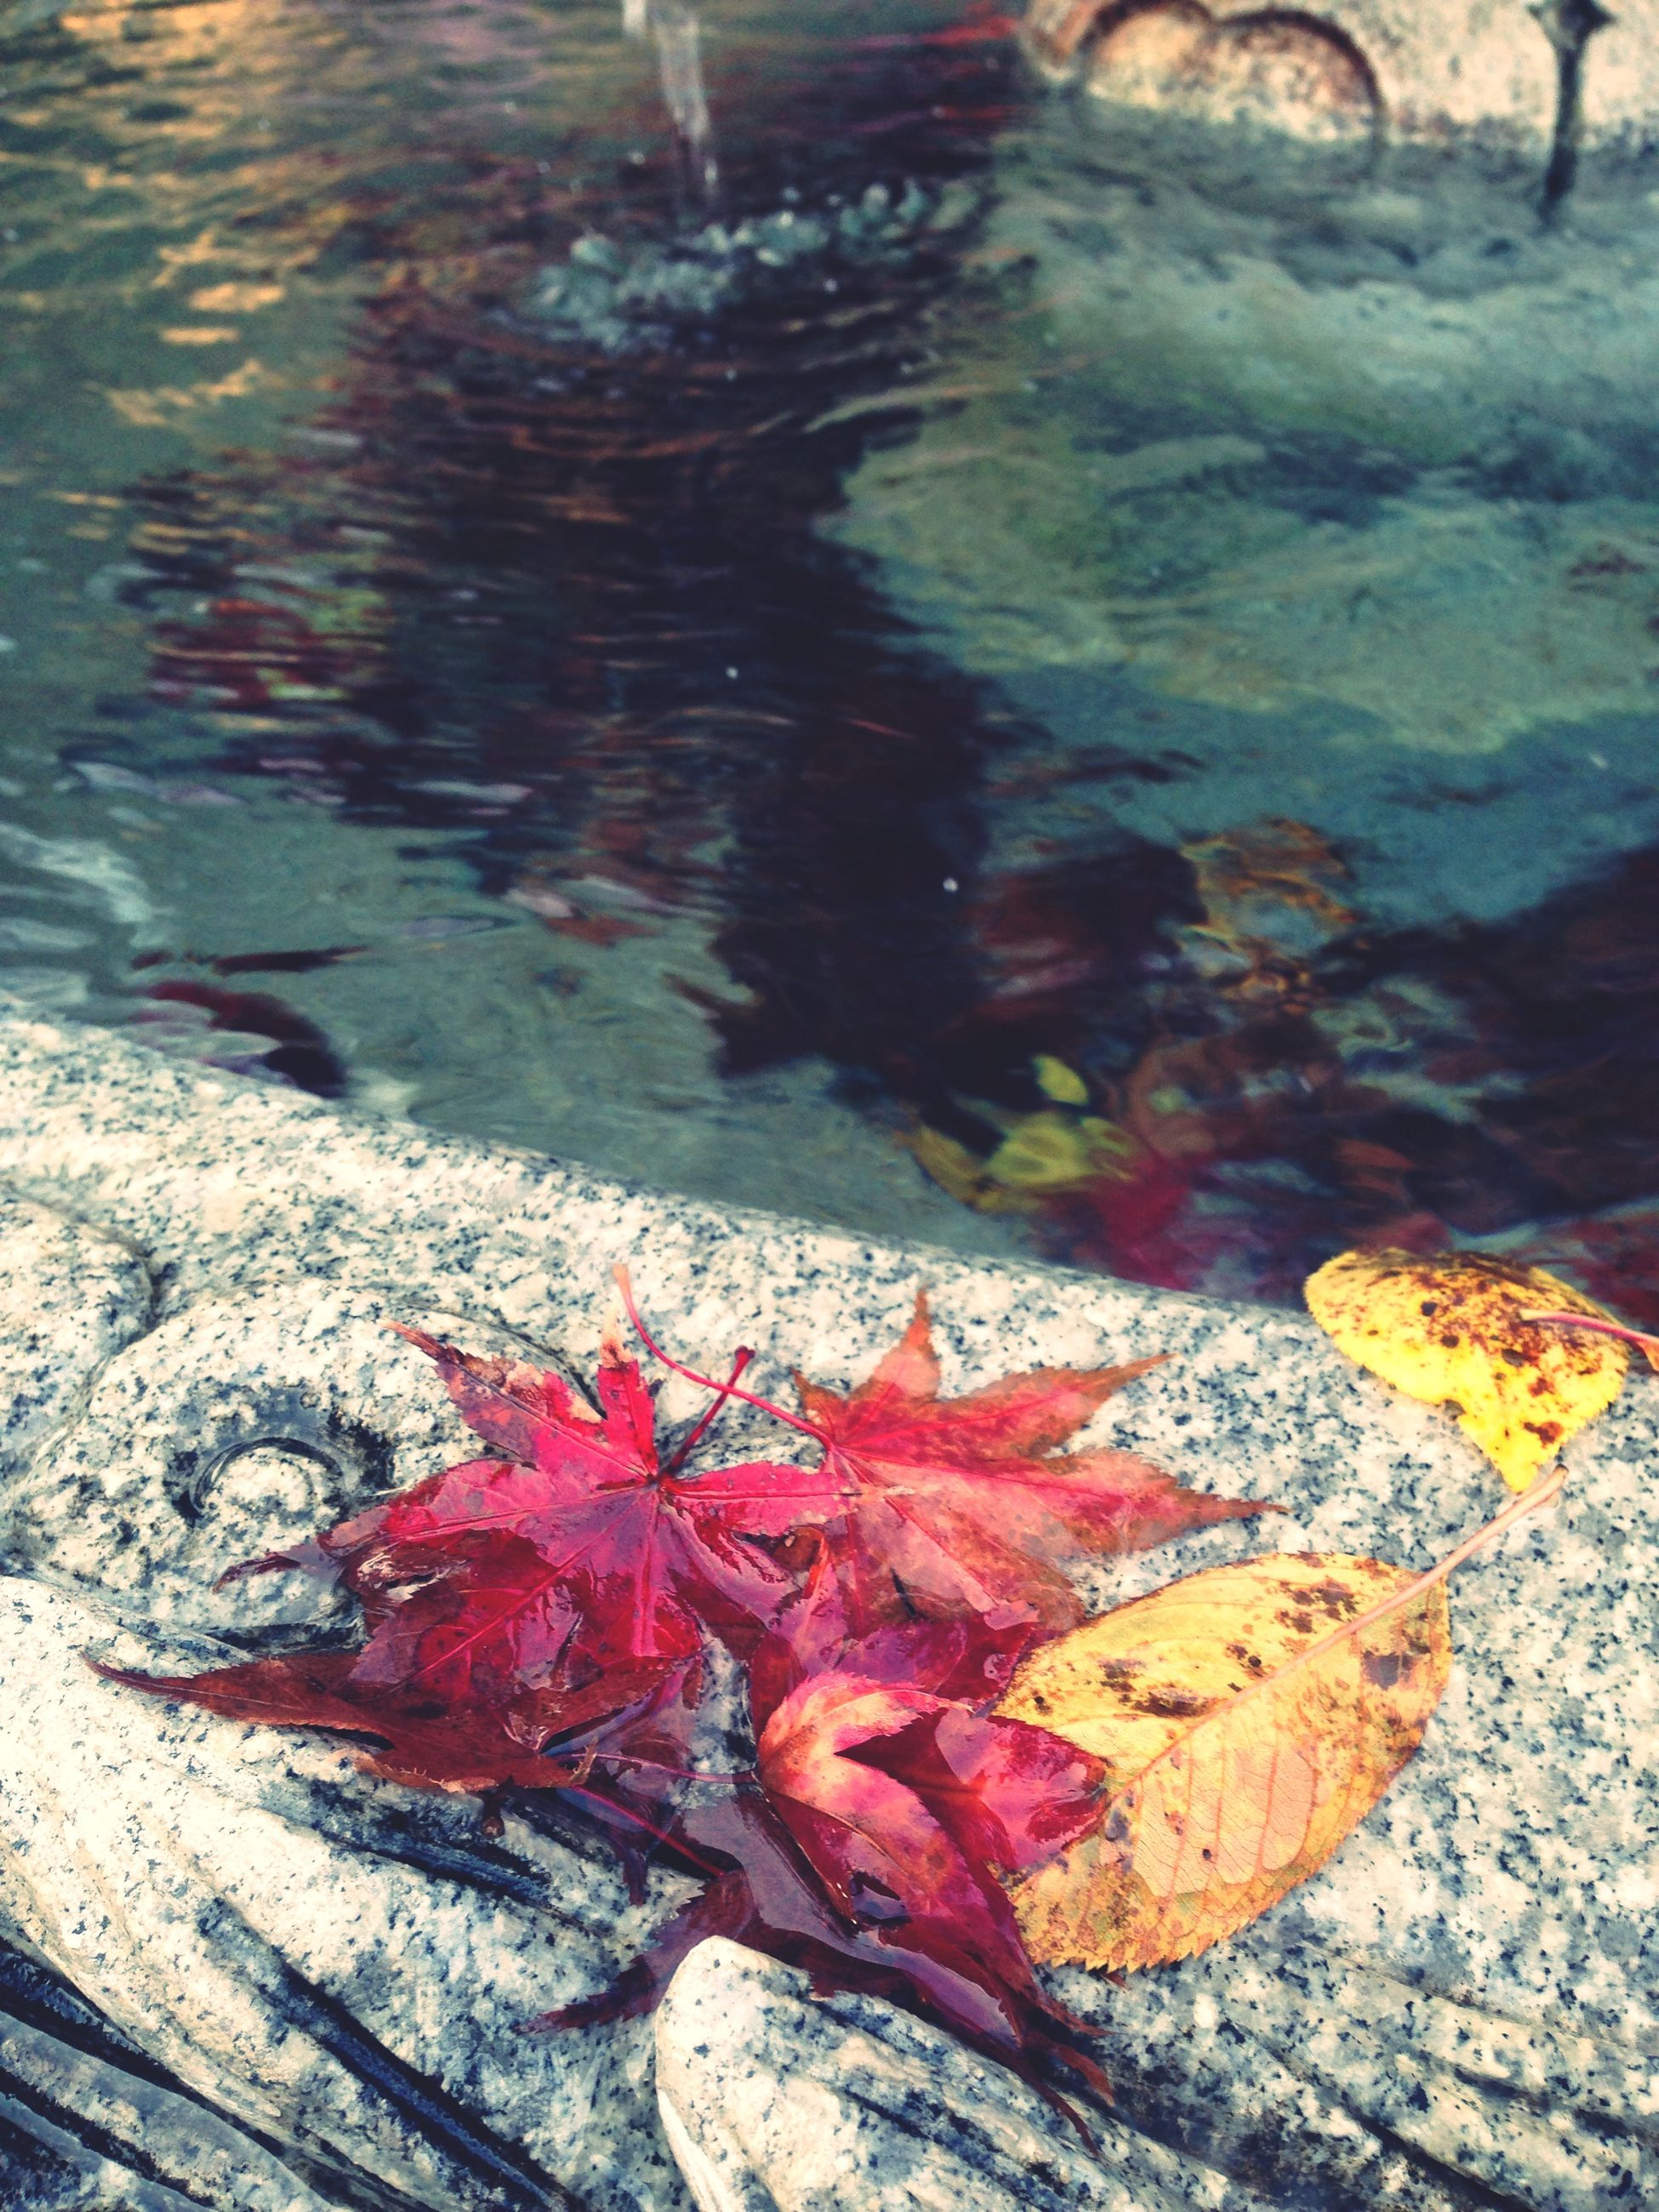 water, high angle view, leaf, nature, autumn, rock - object, change, fallen, outdoors, pond, close-up, day, season, red, no people, beauty in nature, wet, orange color, leaves, reflection